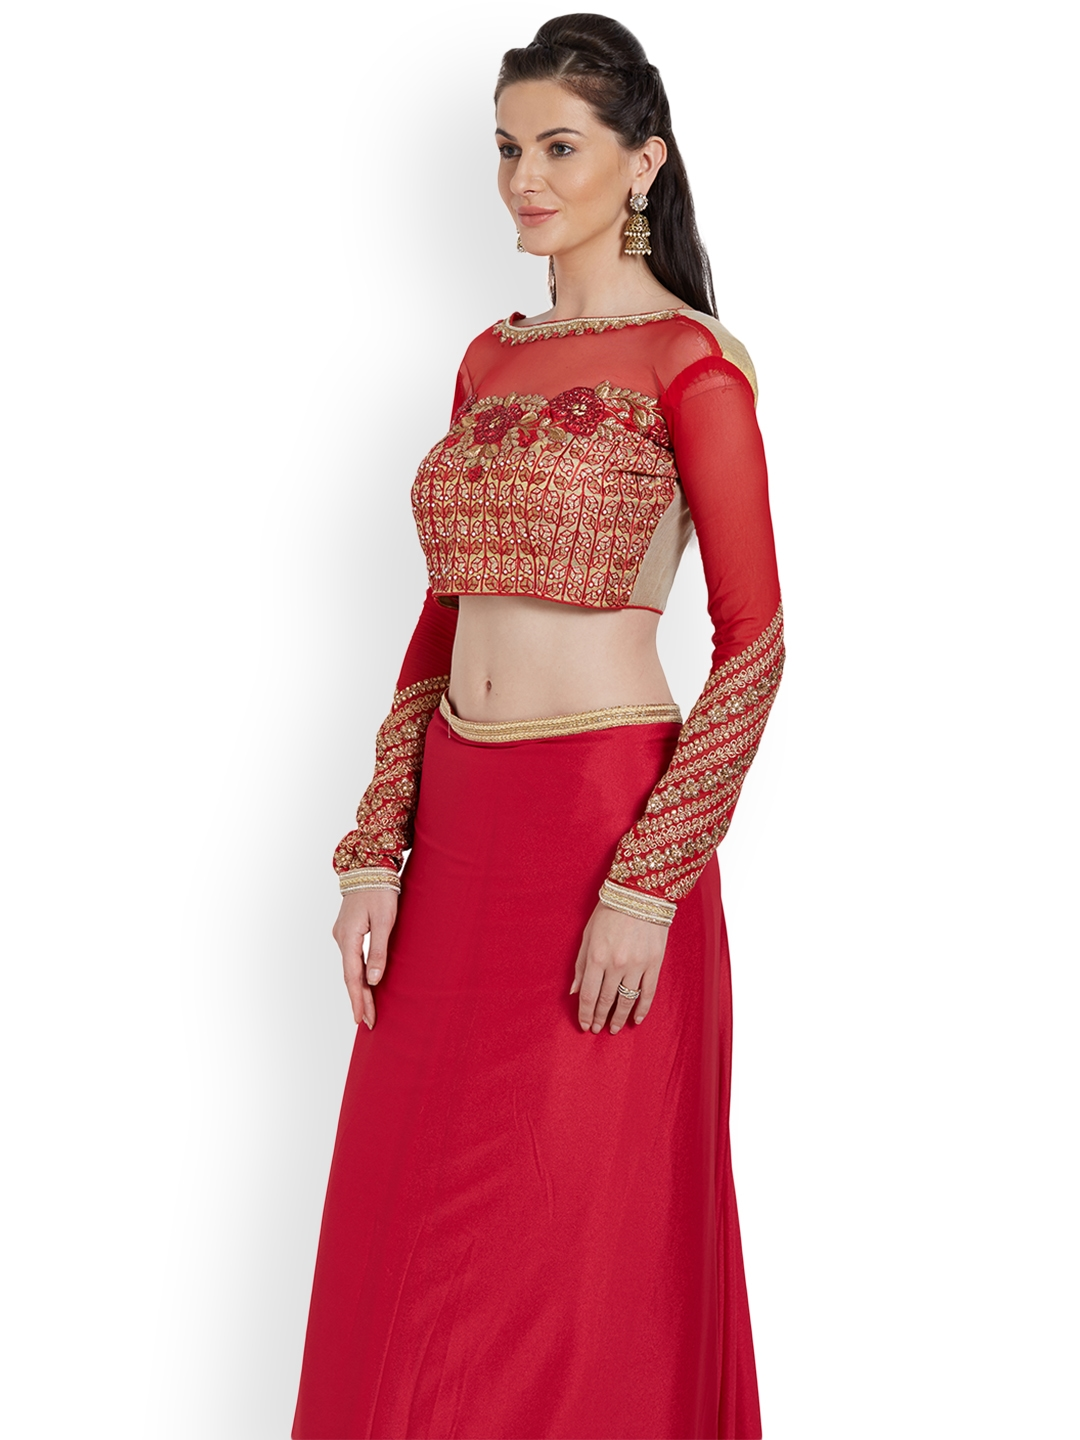 69d3054b56 Buy RIYA Red Embroidered Art Silk & Faux Georgette Saree Blouse ...